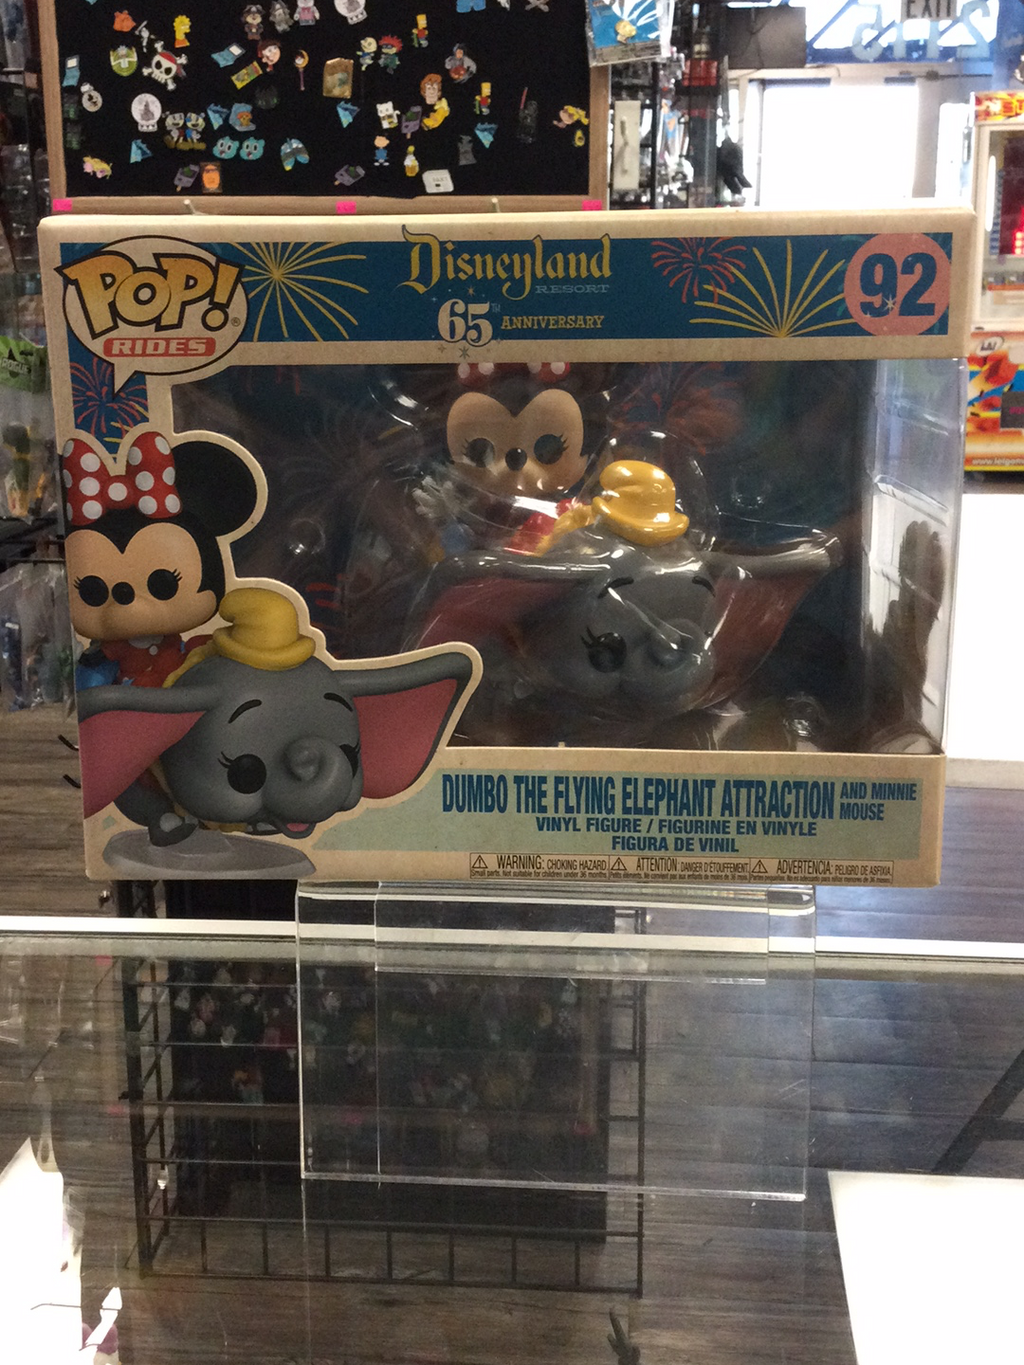 FUNKO POP! Rides #92, Disneyland Resort 65th Anniversary, Dumbo the Flying Elephant Attraction & Minnie Mouse